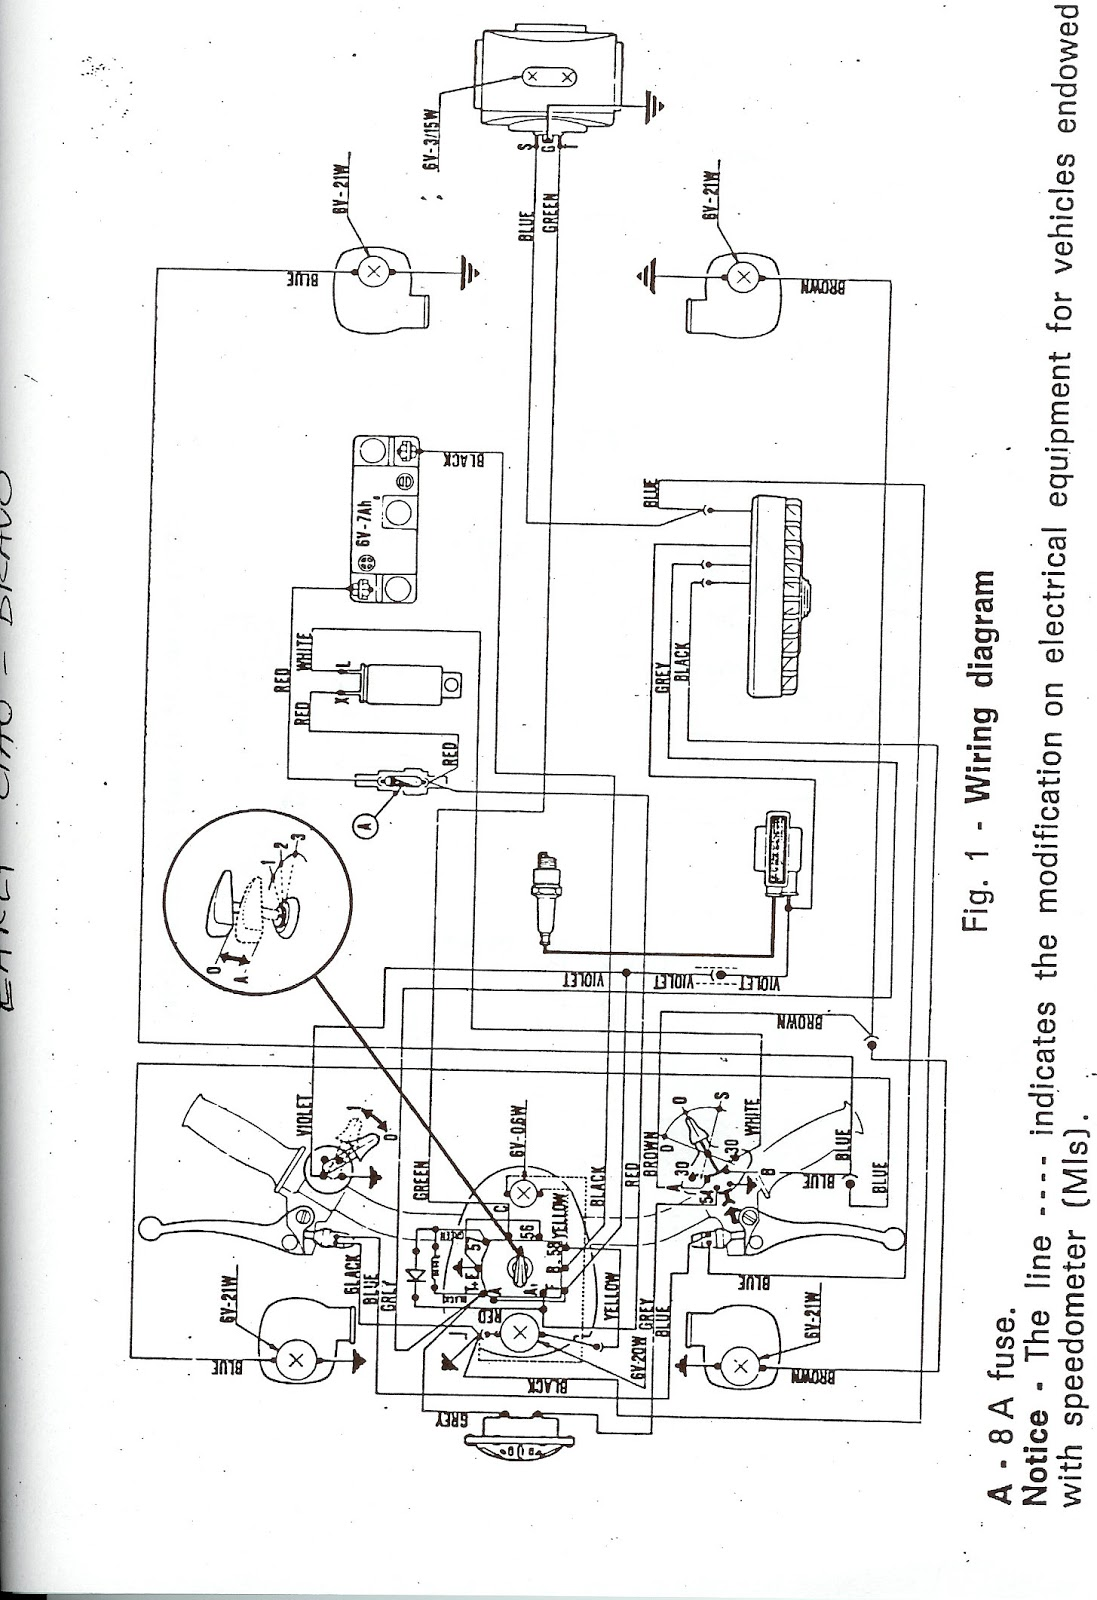 Peugeot Boxer 3 Wiring Diagram | Wiring Library